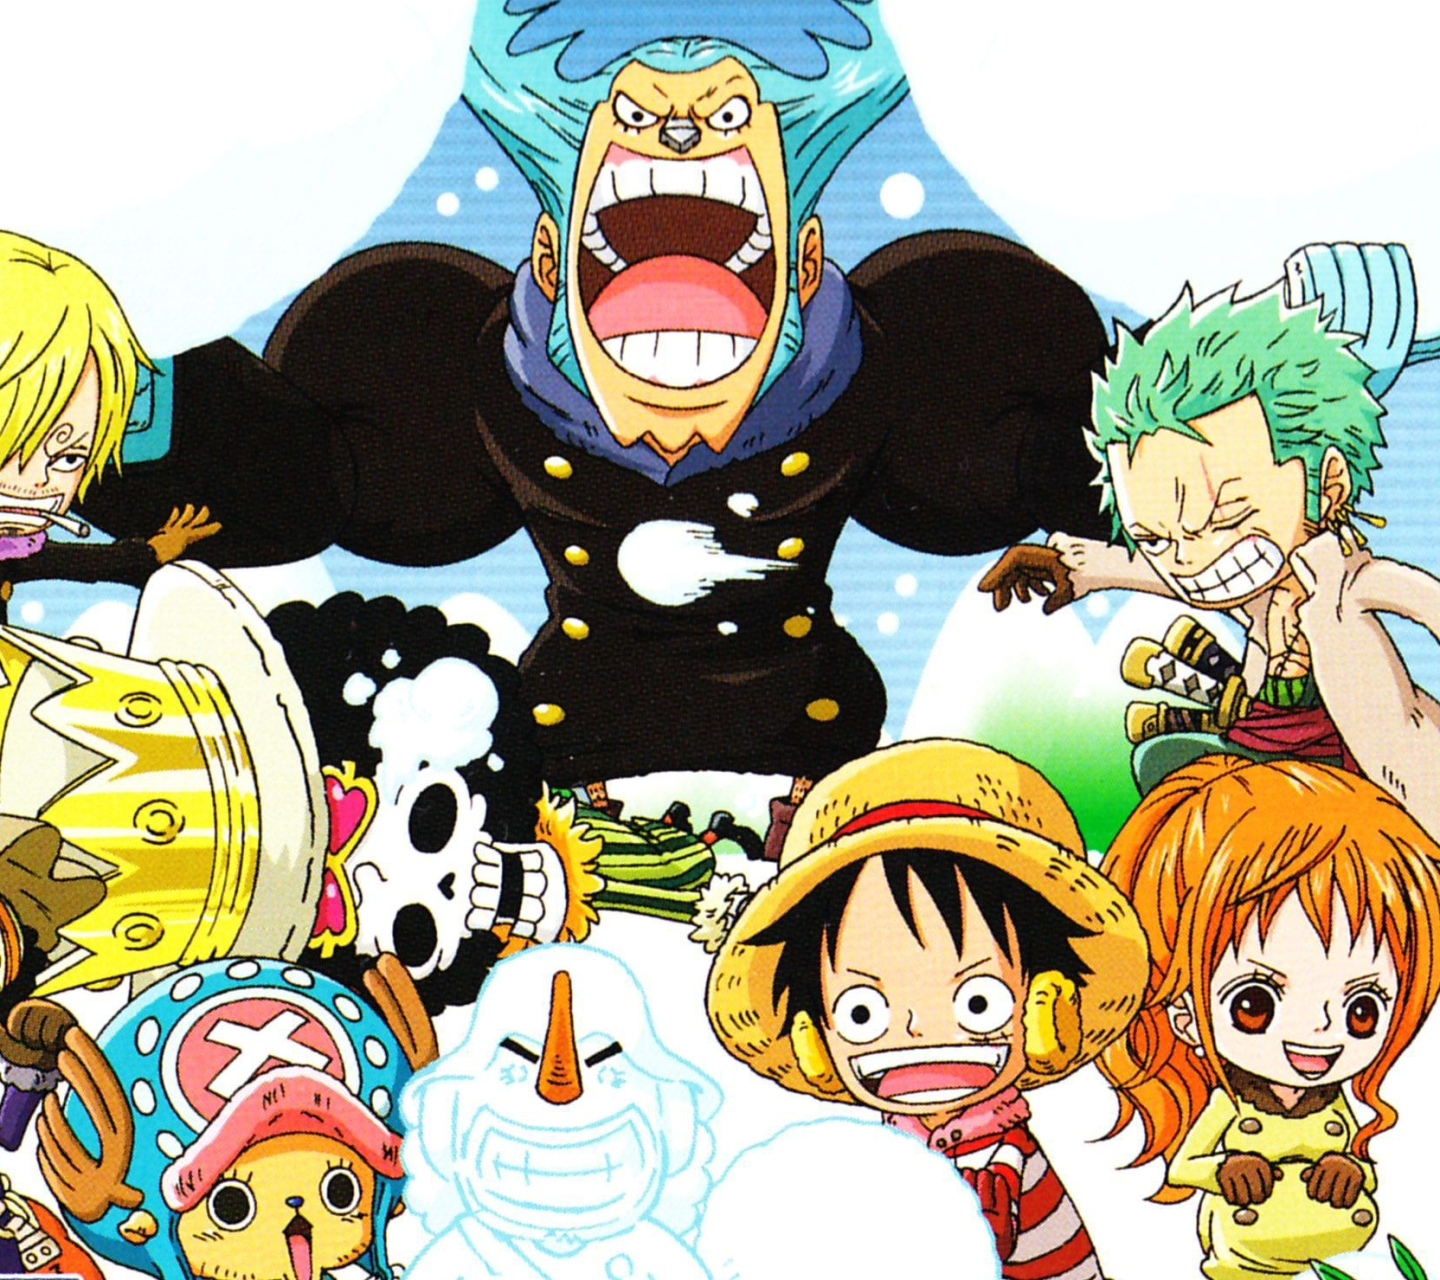 Anime One Piece 1440x1280 Wallpaper Id 720879 Mobile Abyss